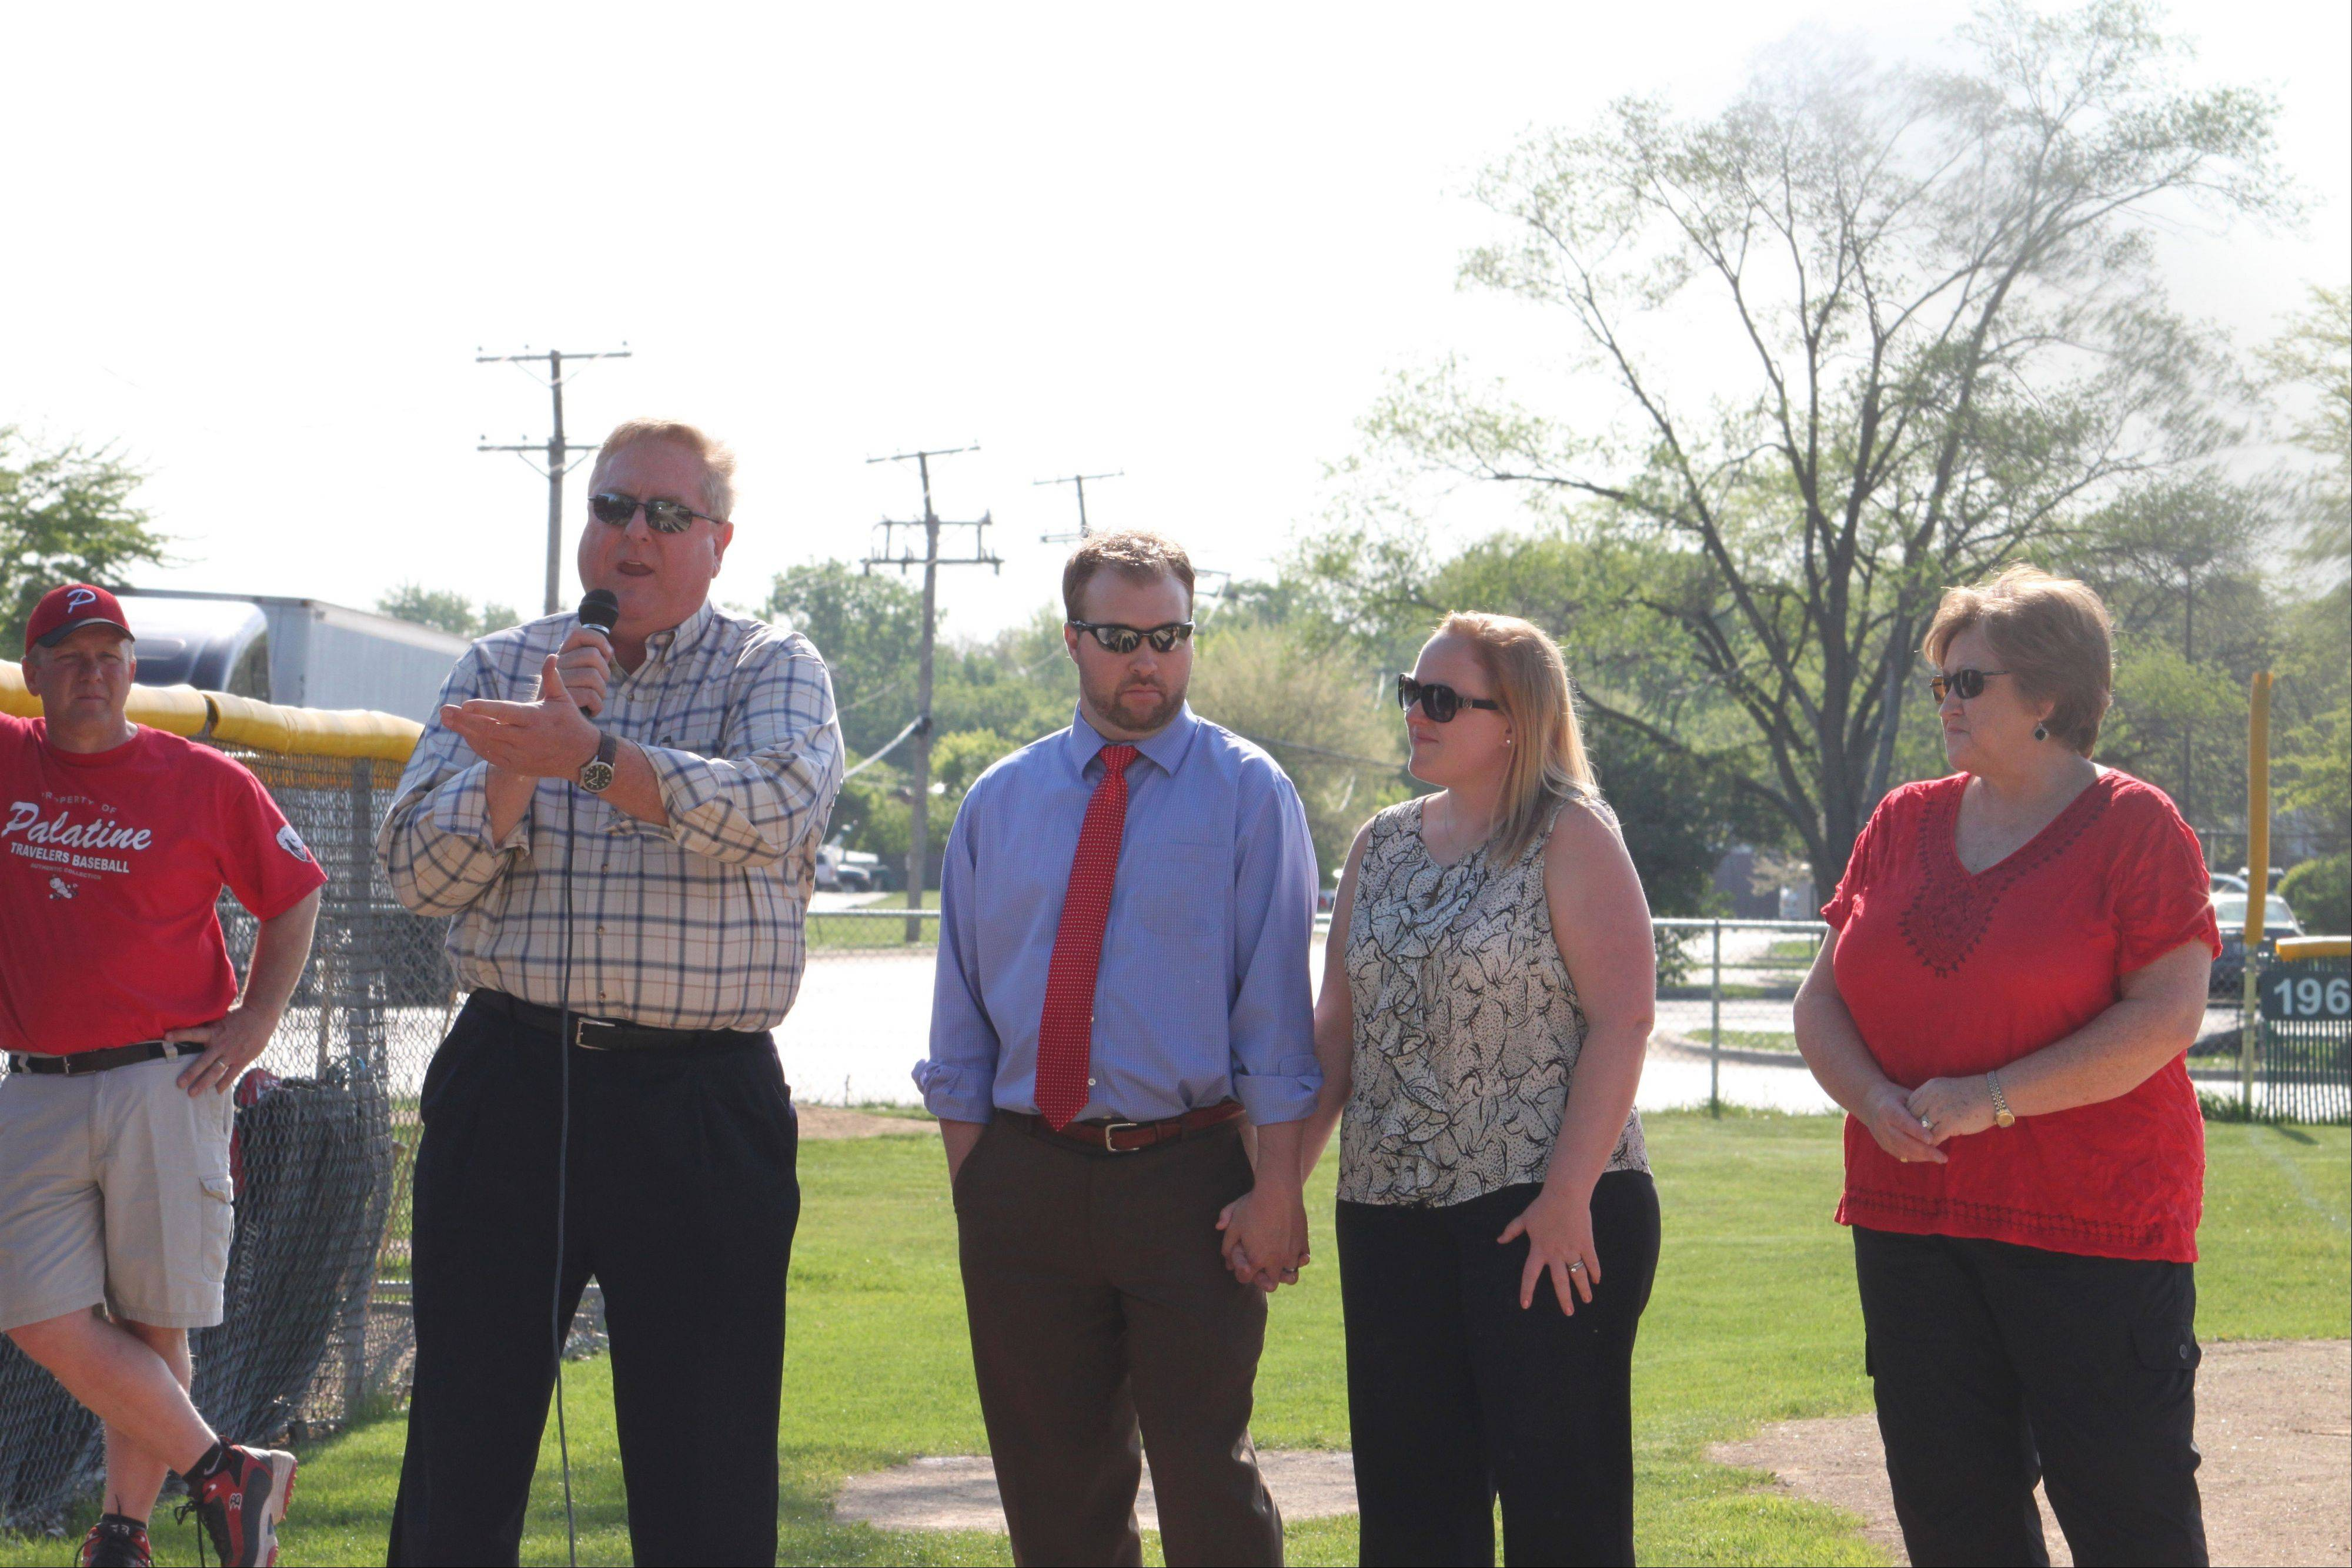 Steve Pohl, father of Casey Pohl, addresses the crowd as his son-in-law, Travis Siebrass, his daughter, Kimberly, and his wife, Debbie, listen during a ceremony to retire Casey's No. 47 on Thursday in Palatine.